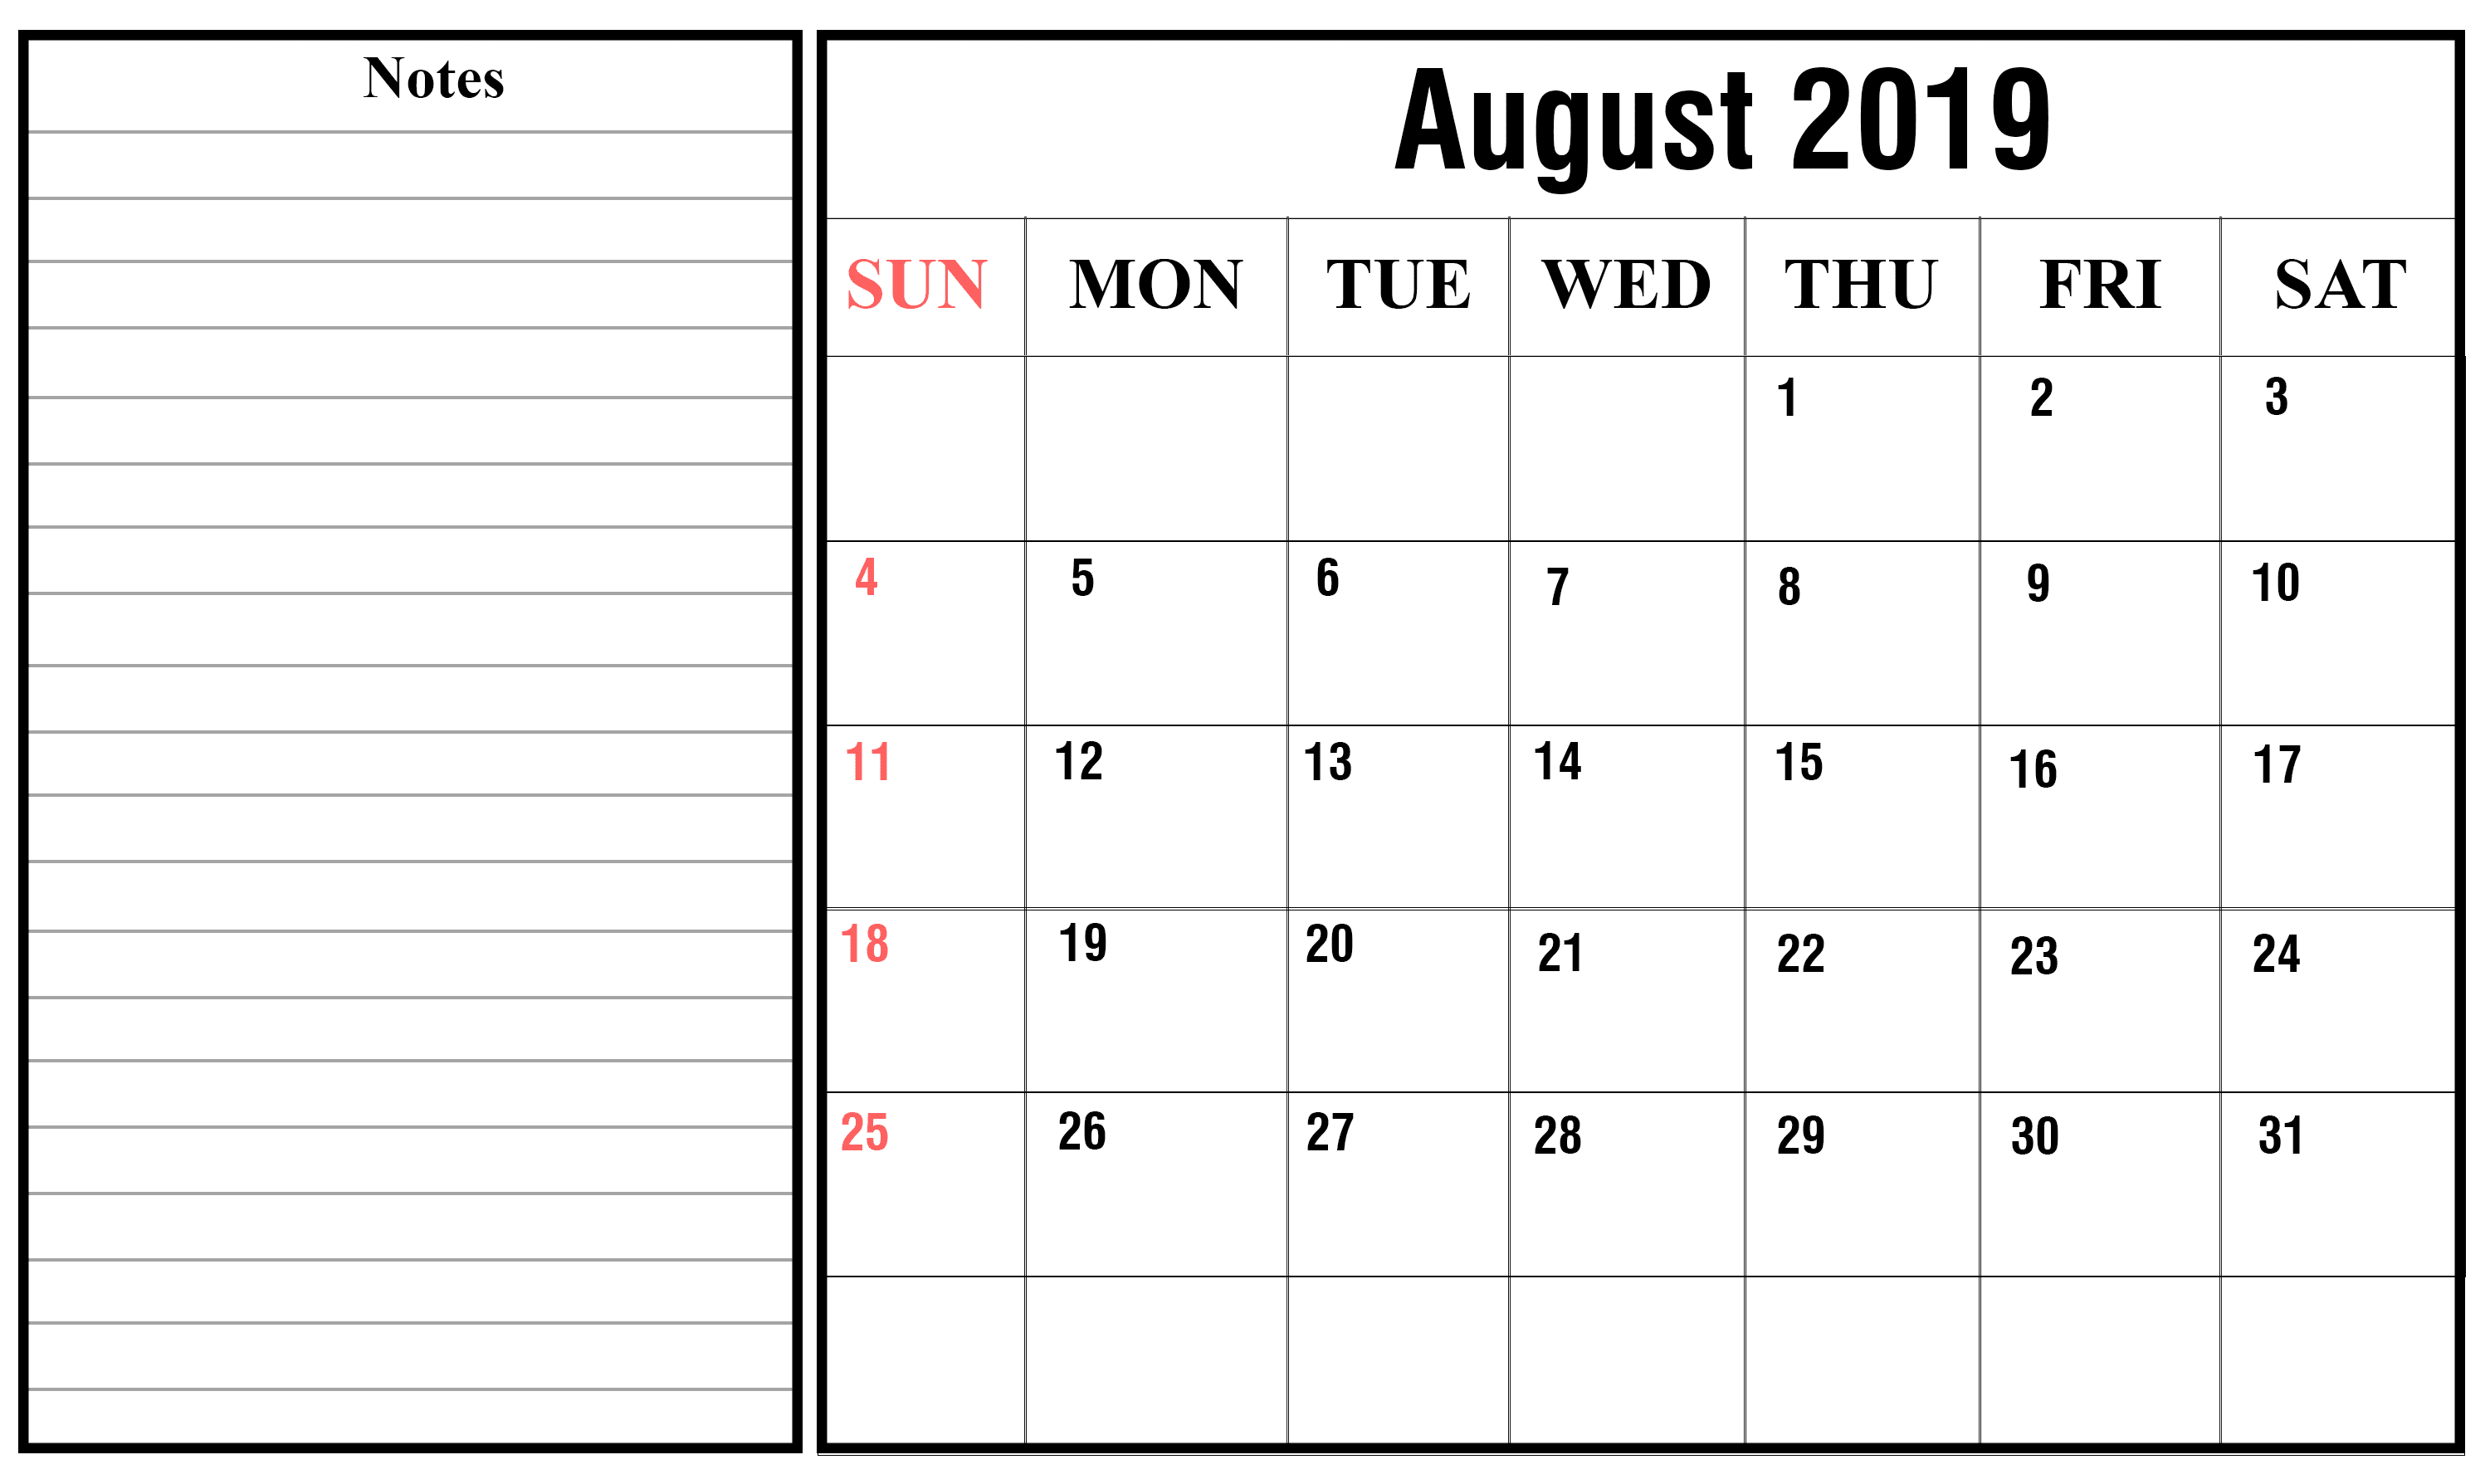 August Calendar 2019 Editable To Do List